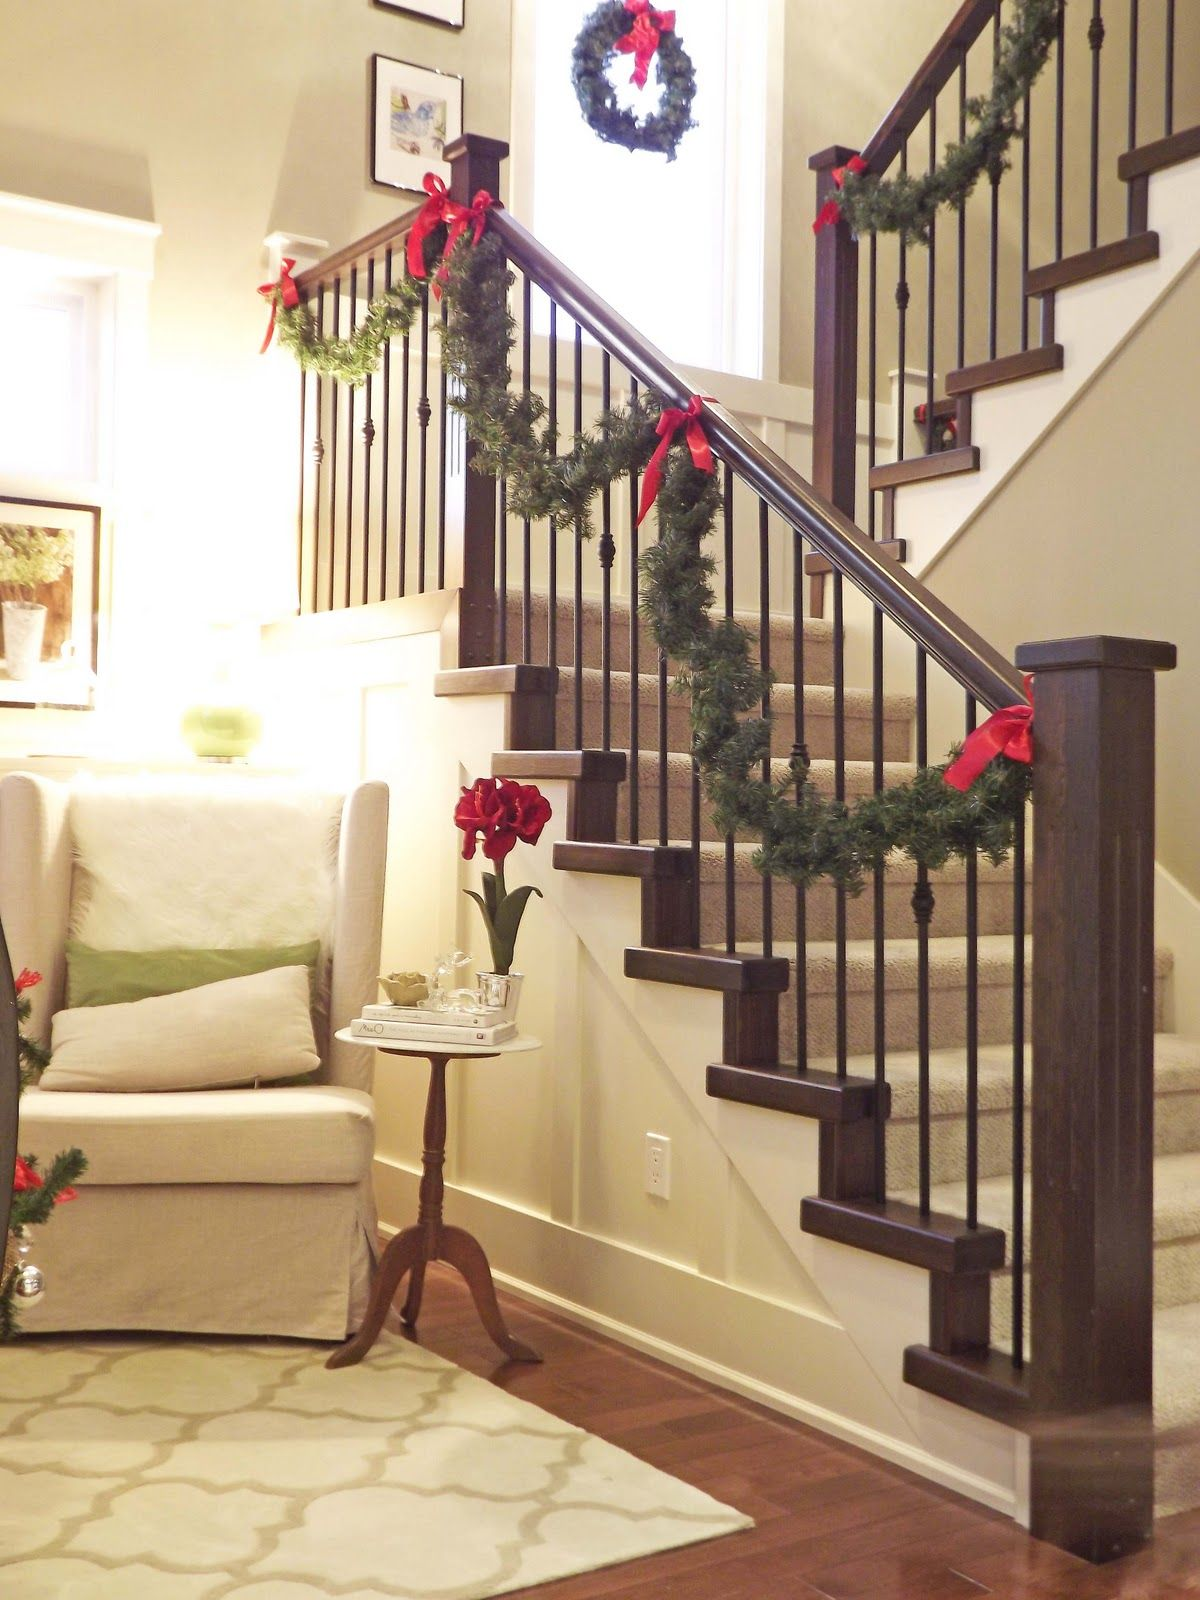 Banister for staircase garland and staircases were made for each gorgeous christmas staircase decor ideas for inspiration junglespirit Images